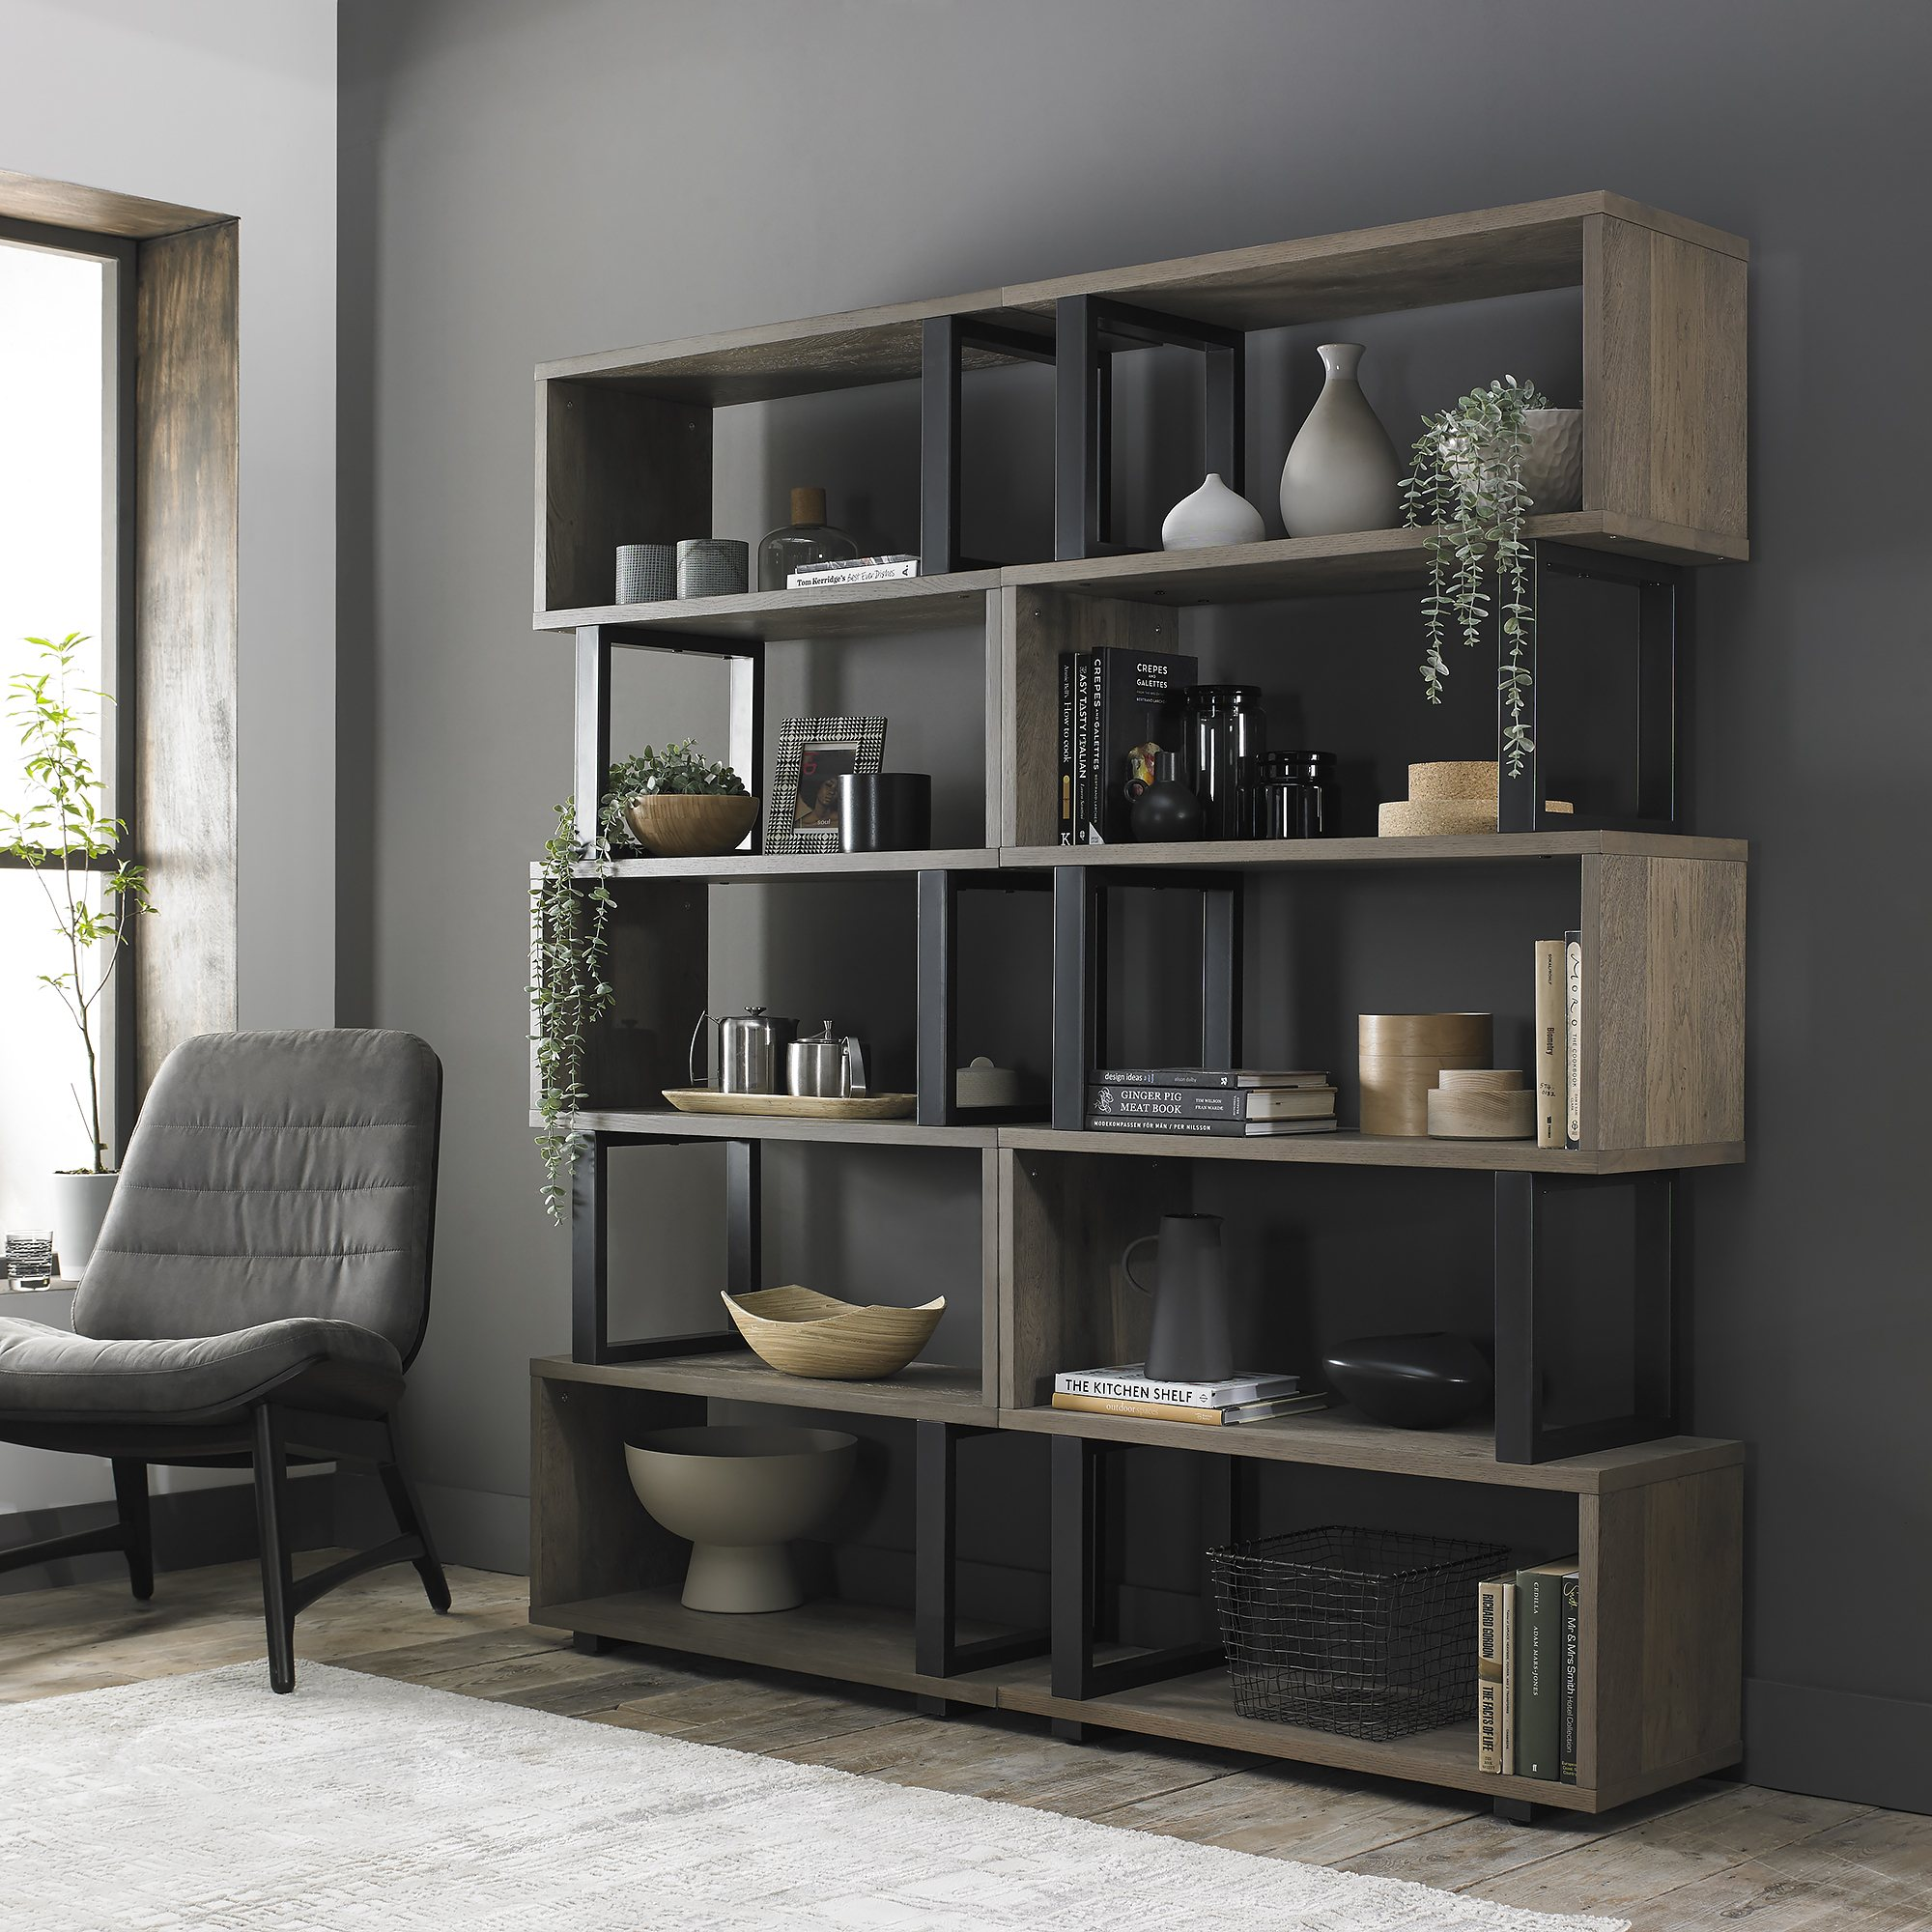 BRINDISI OPEN BOOKCASE (X2) SIDE BY SIDE jpg